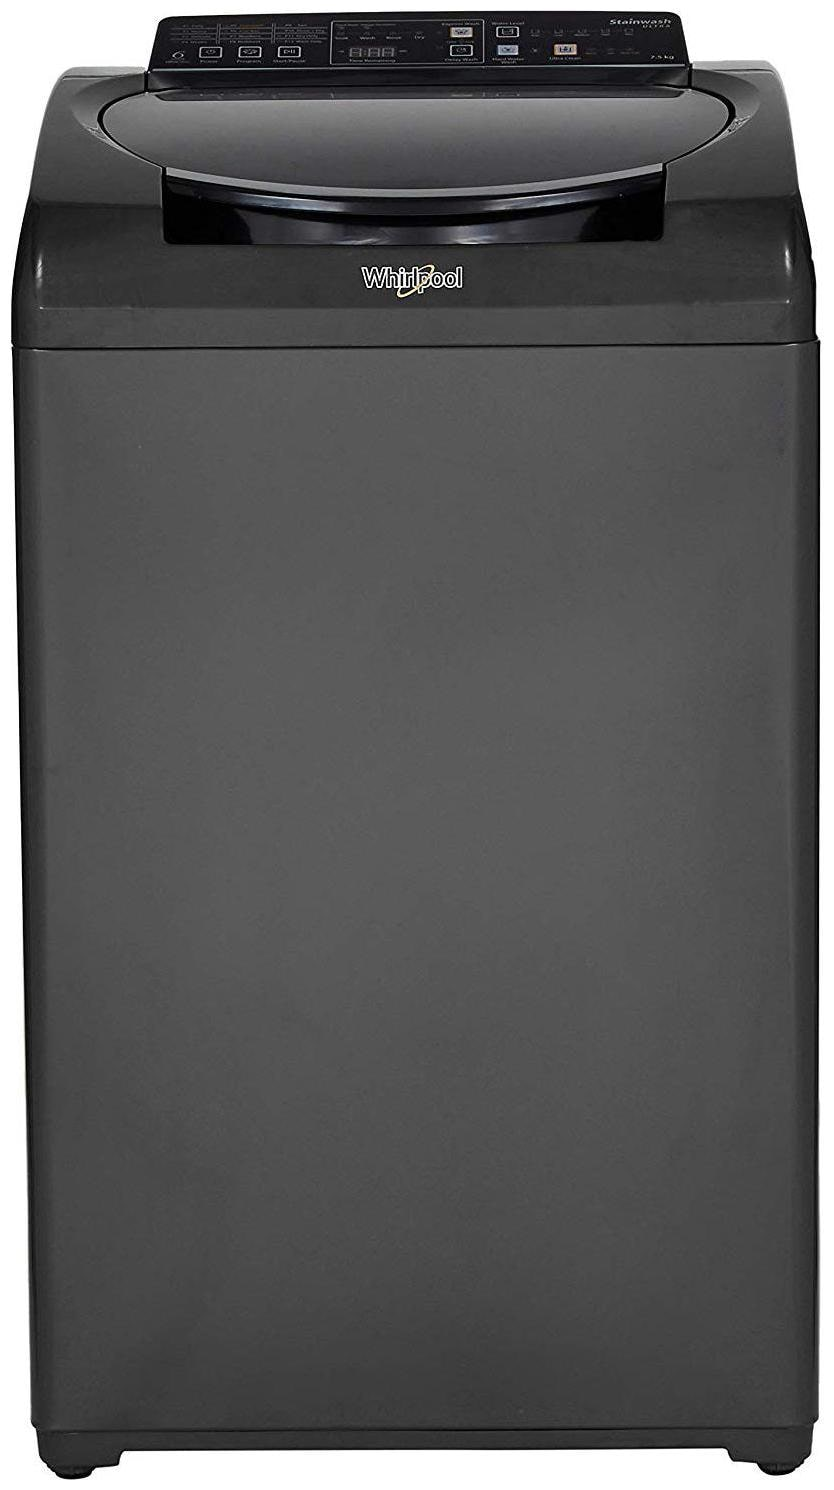 Whirlpool 7.5 kg Fully Automatic Top Load Washing machine   STAINWASH ULTRA SC , Grey by Home Shopper